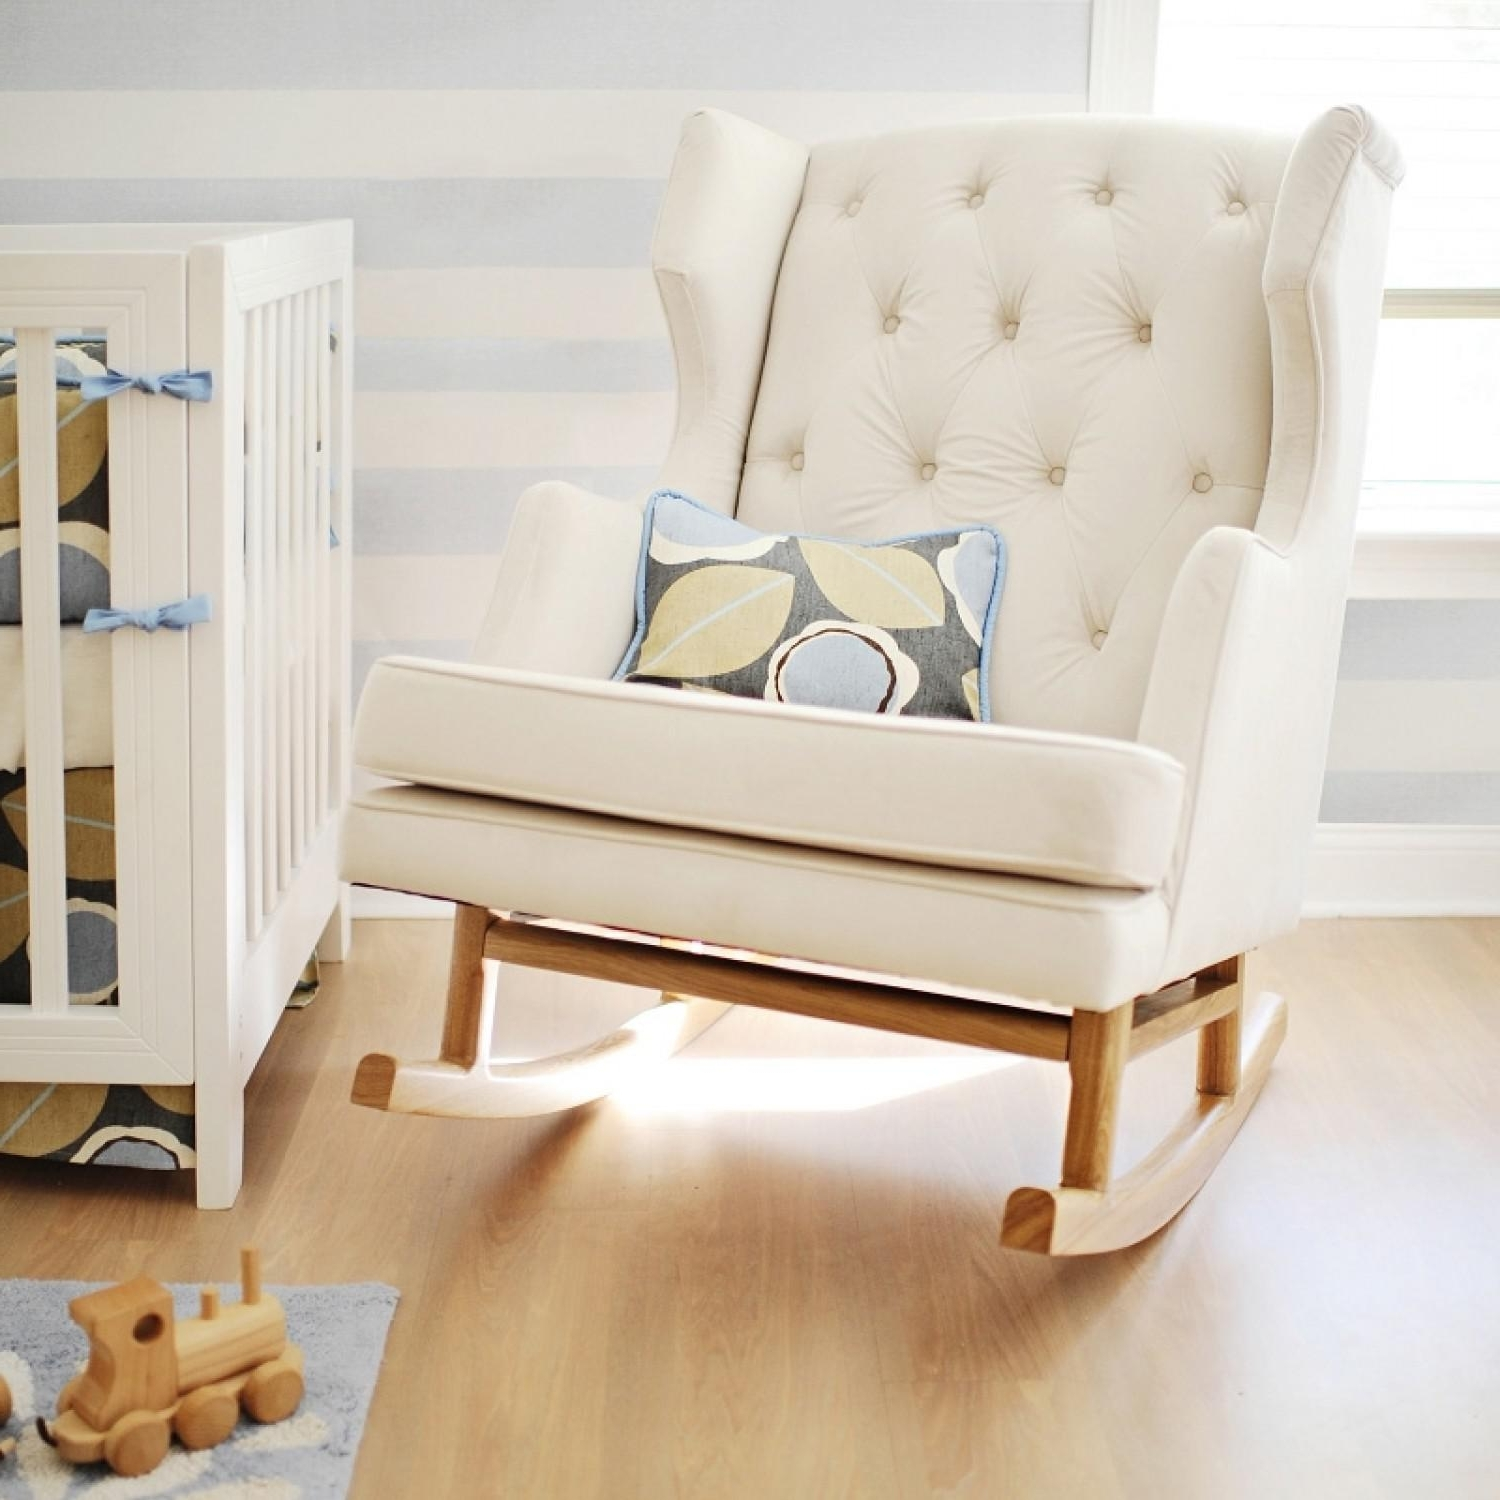 Rocking Chairs With Cushions Within Widely Used Comfy Tufted Rocking Chair Cushions Design : Chair Cushions The (View 5 of 20)